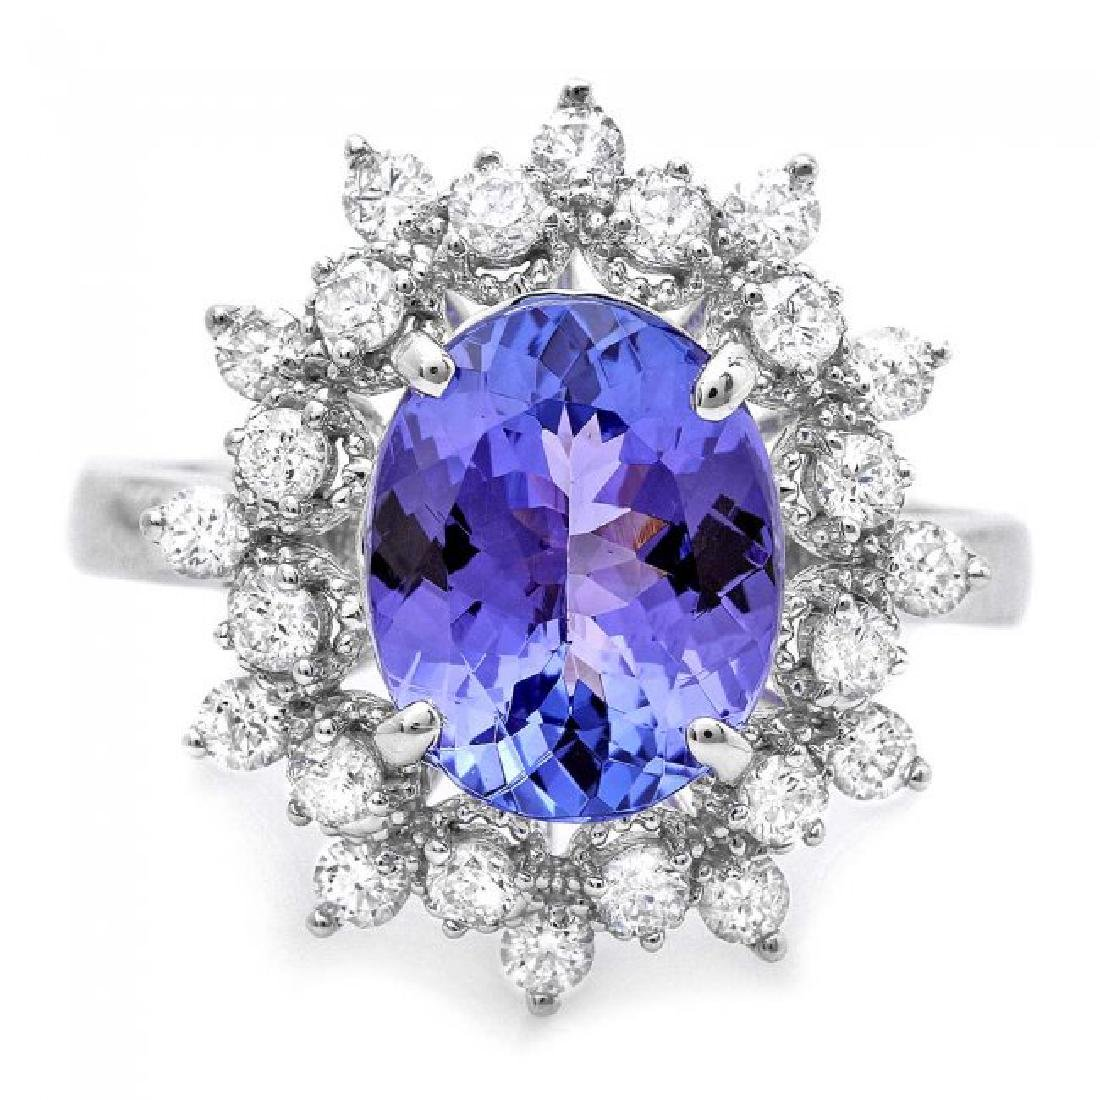 14k Gold 2.60ct Tanzanite 0.65ct Diamond Ring - 2